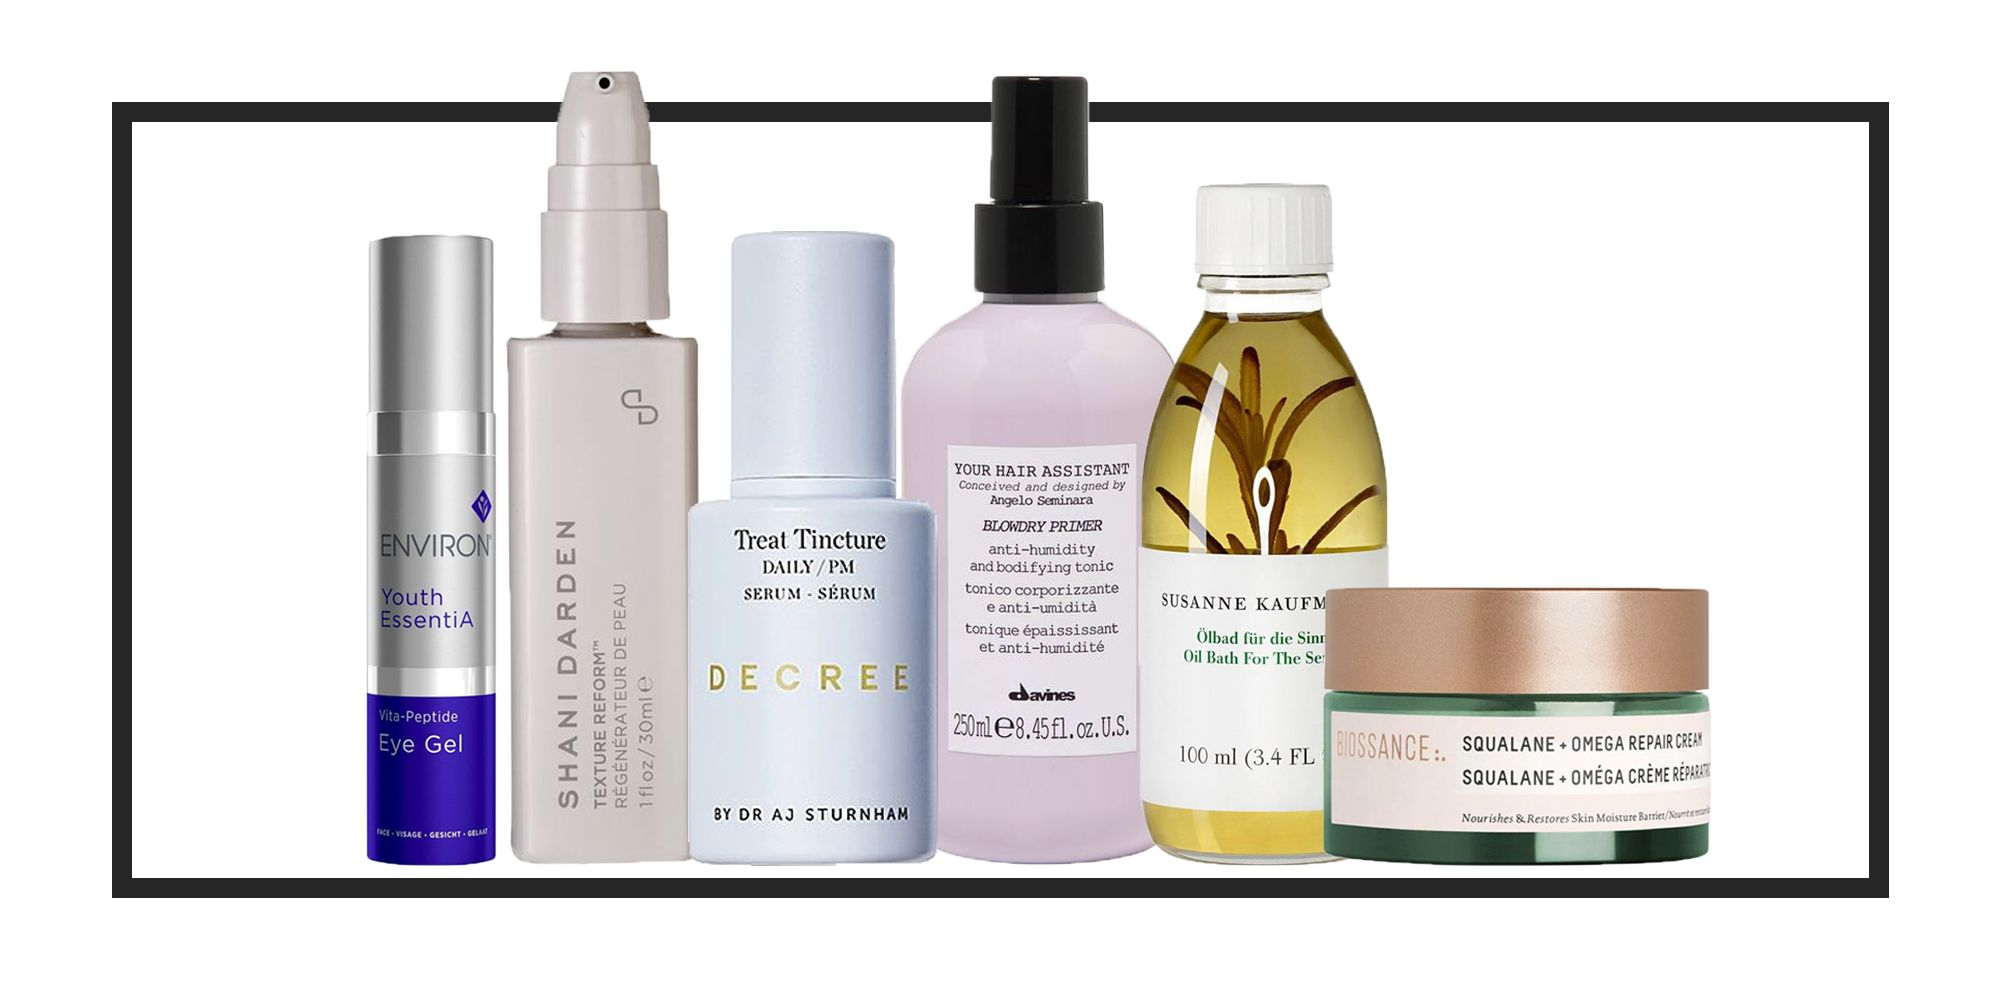 The Bazaar beauty team pick their favourite unsung beauty brands